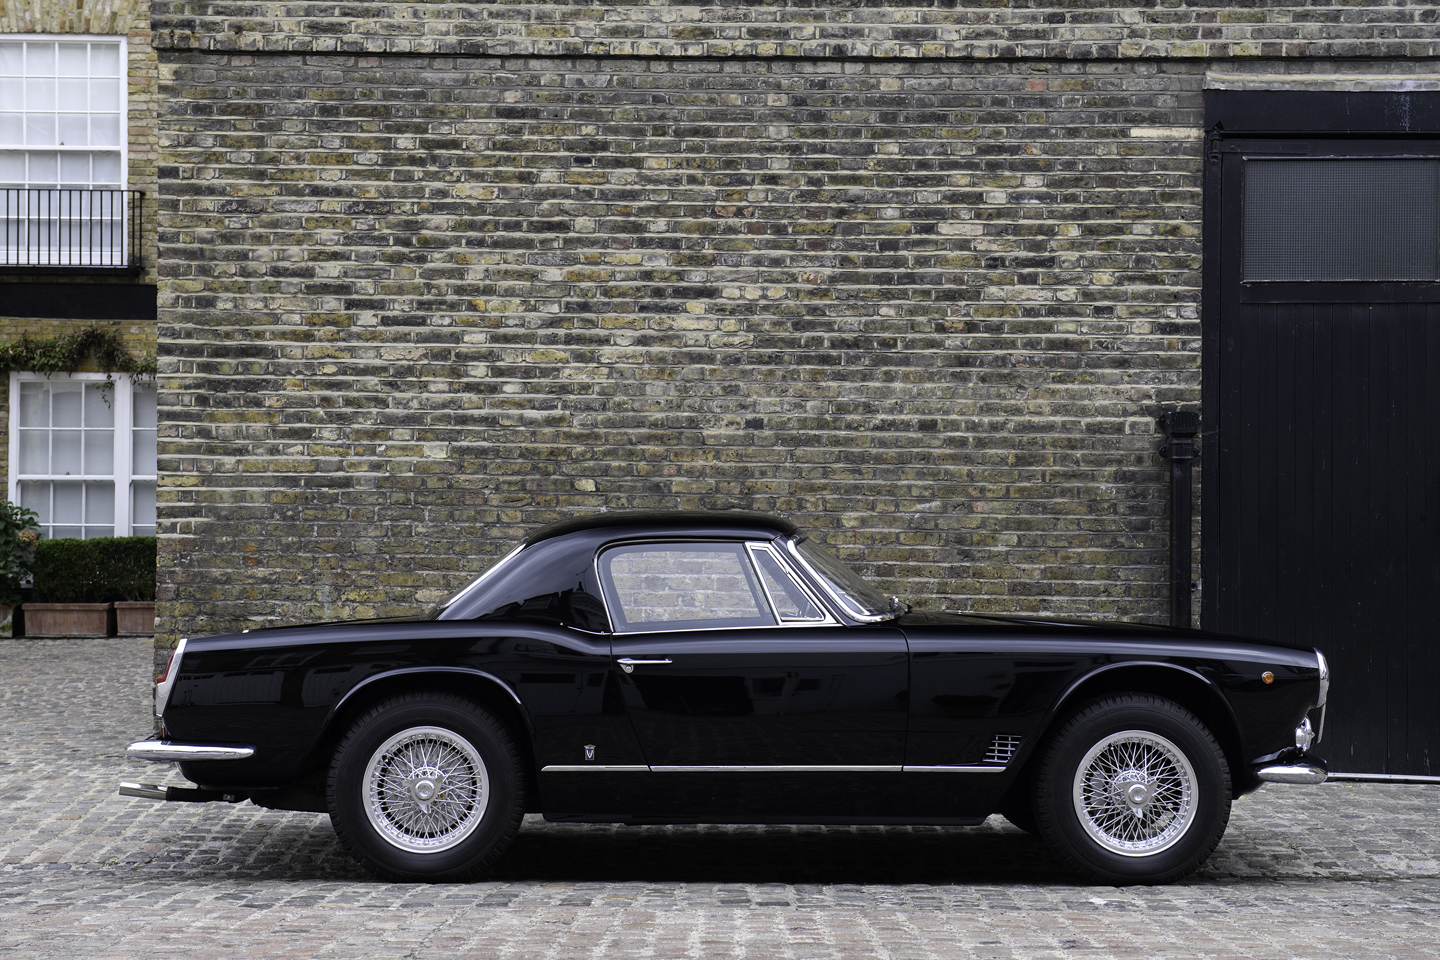 1962 maserati 3500 gt vignale spyder cars for sale fiskens